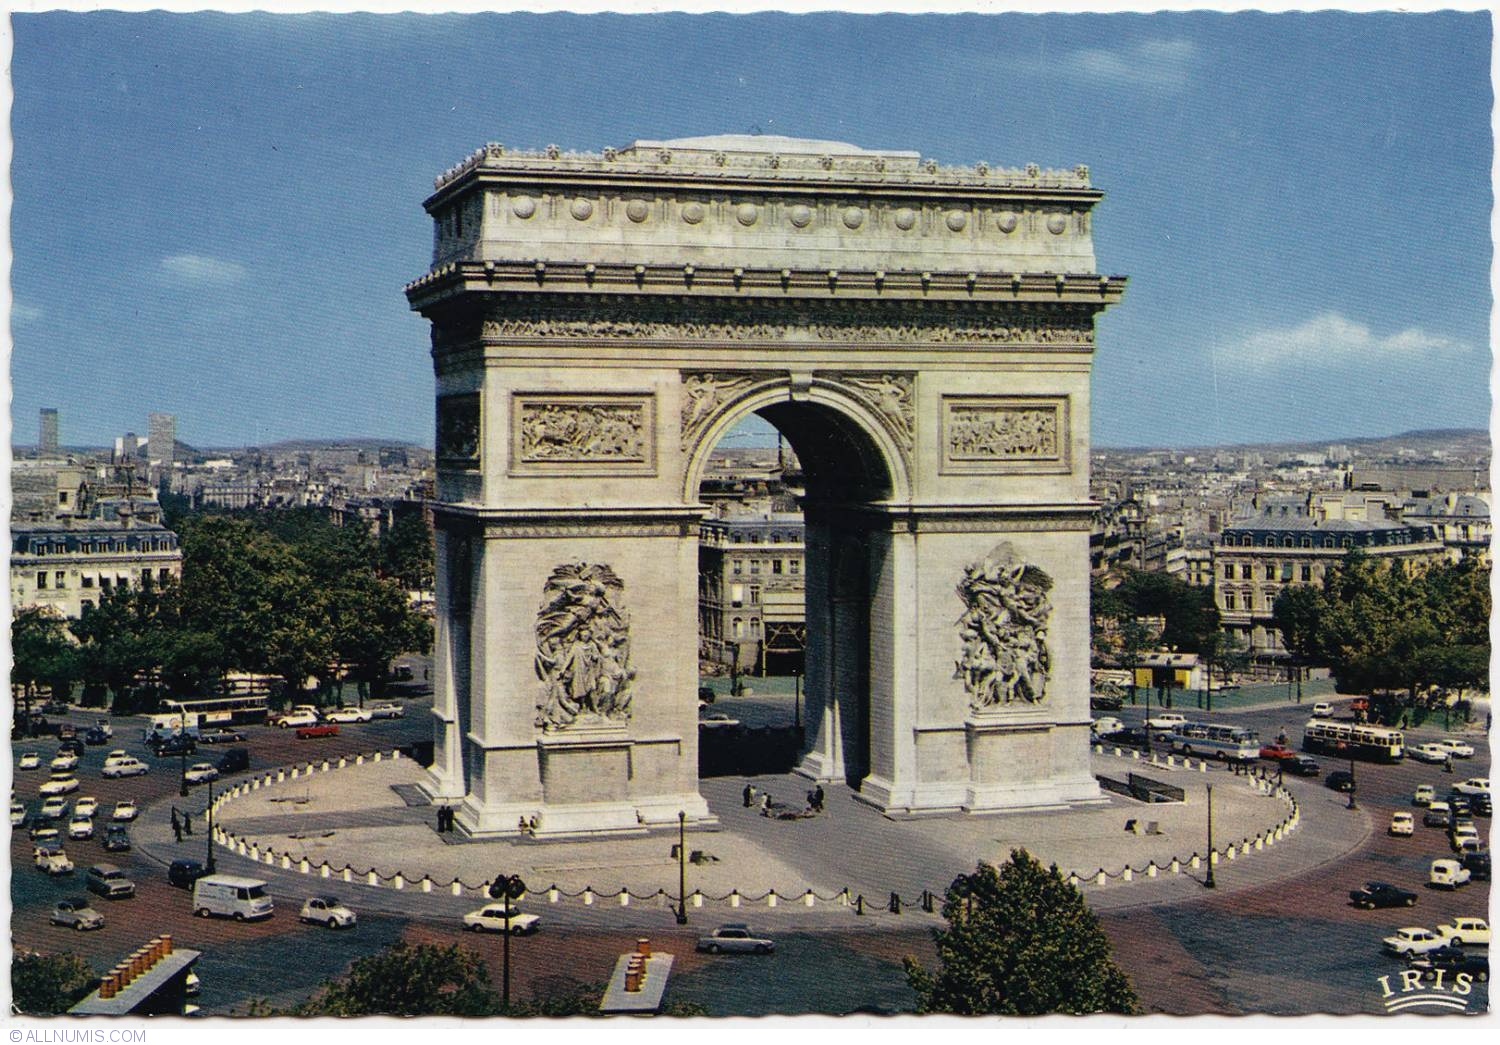 paris arc de triomphe de l 39 toile 1970 1972 paris and le de france france postcard 8020. Black Bedroom Furniture Sets. Home Design Ideas